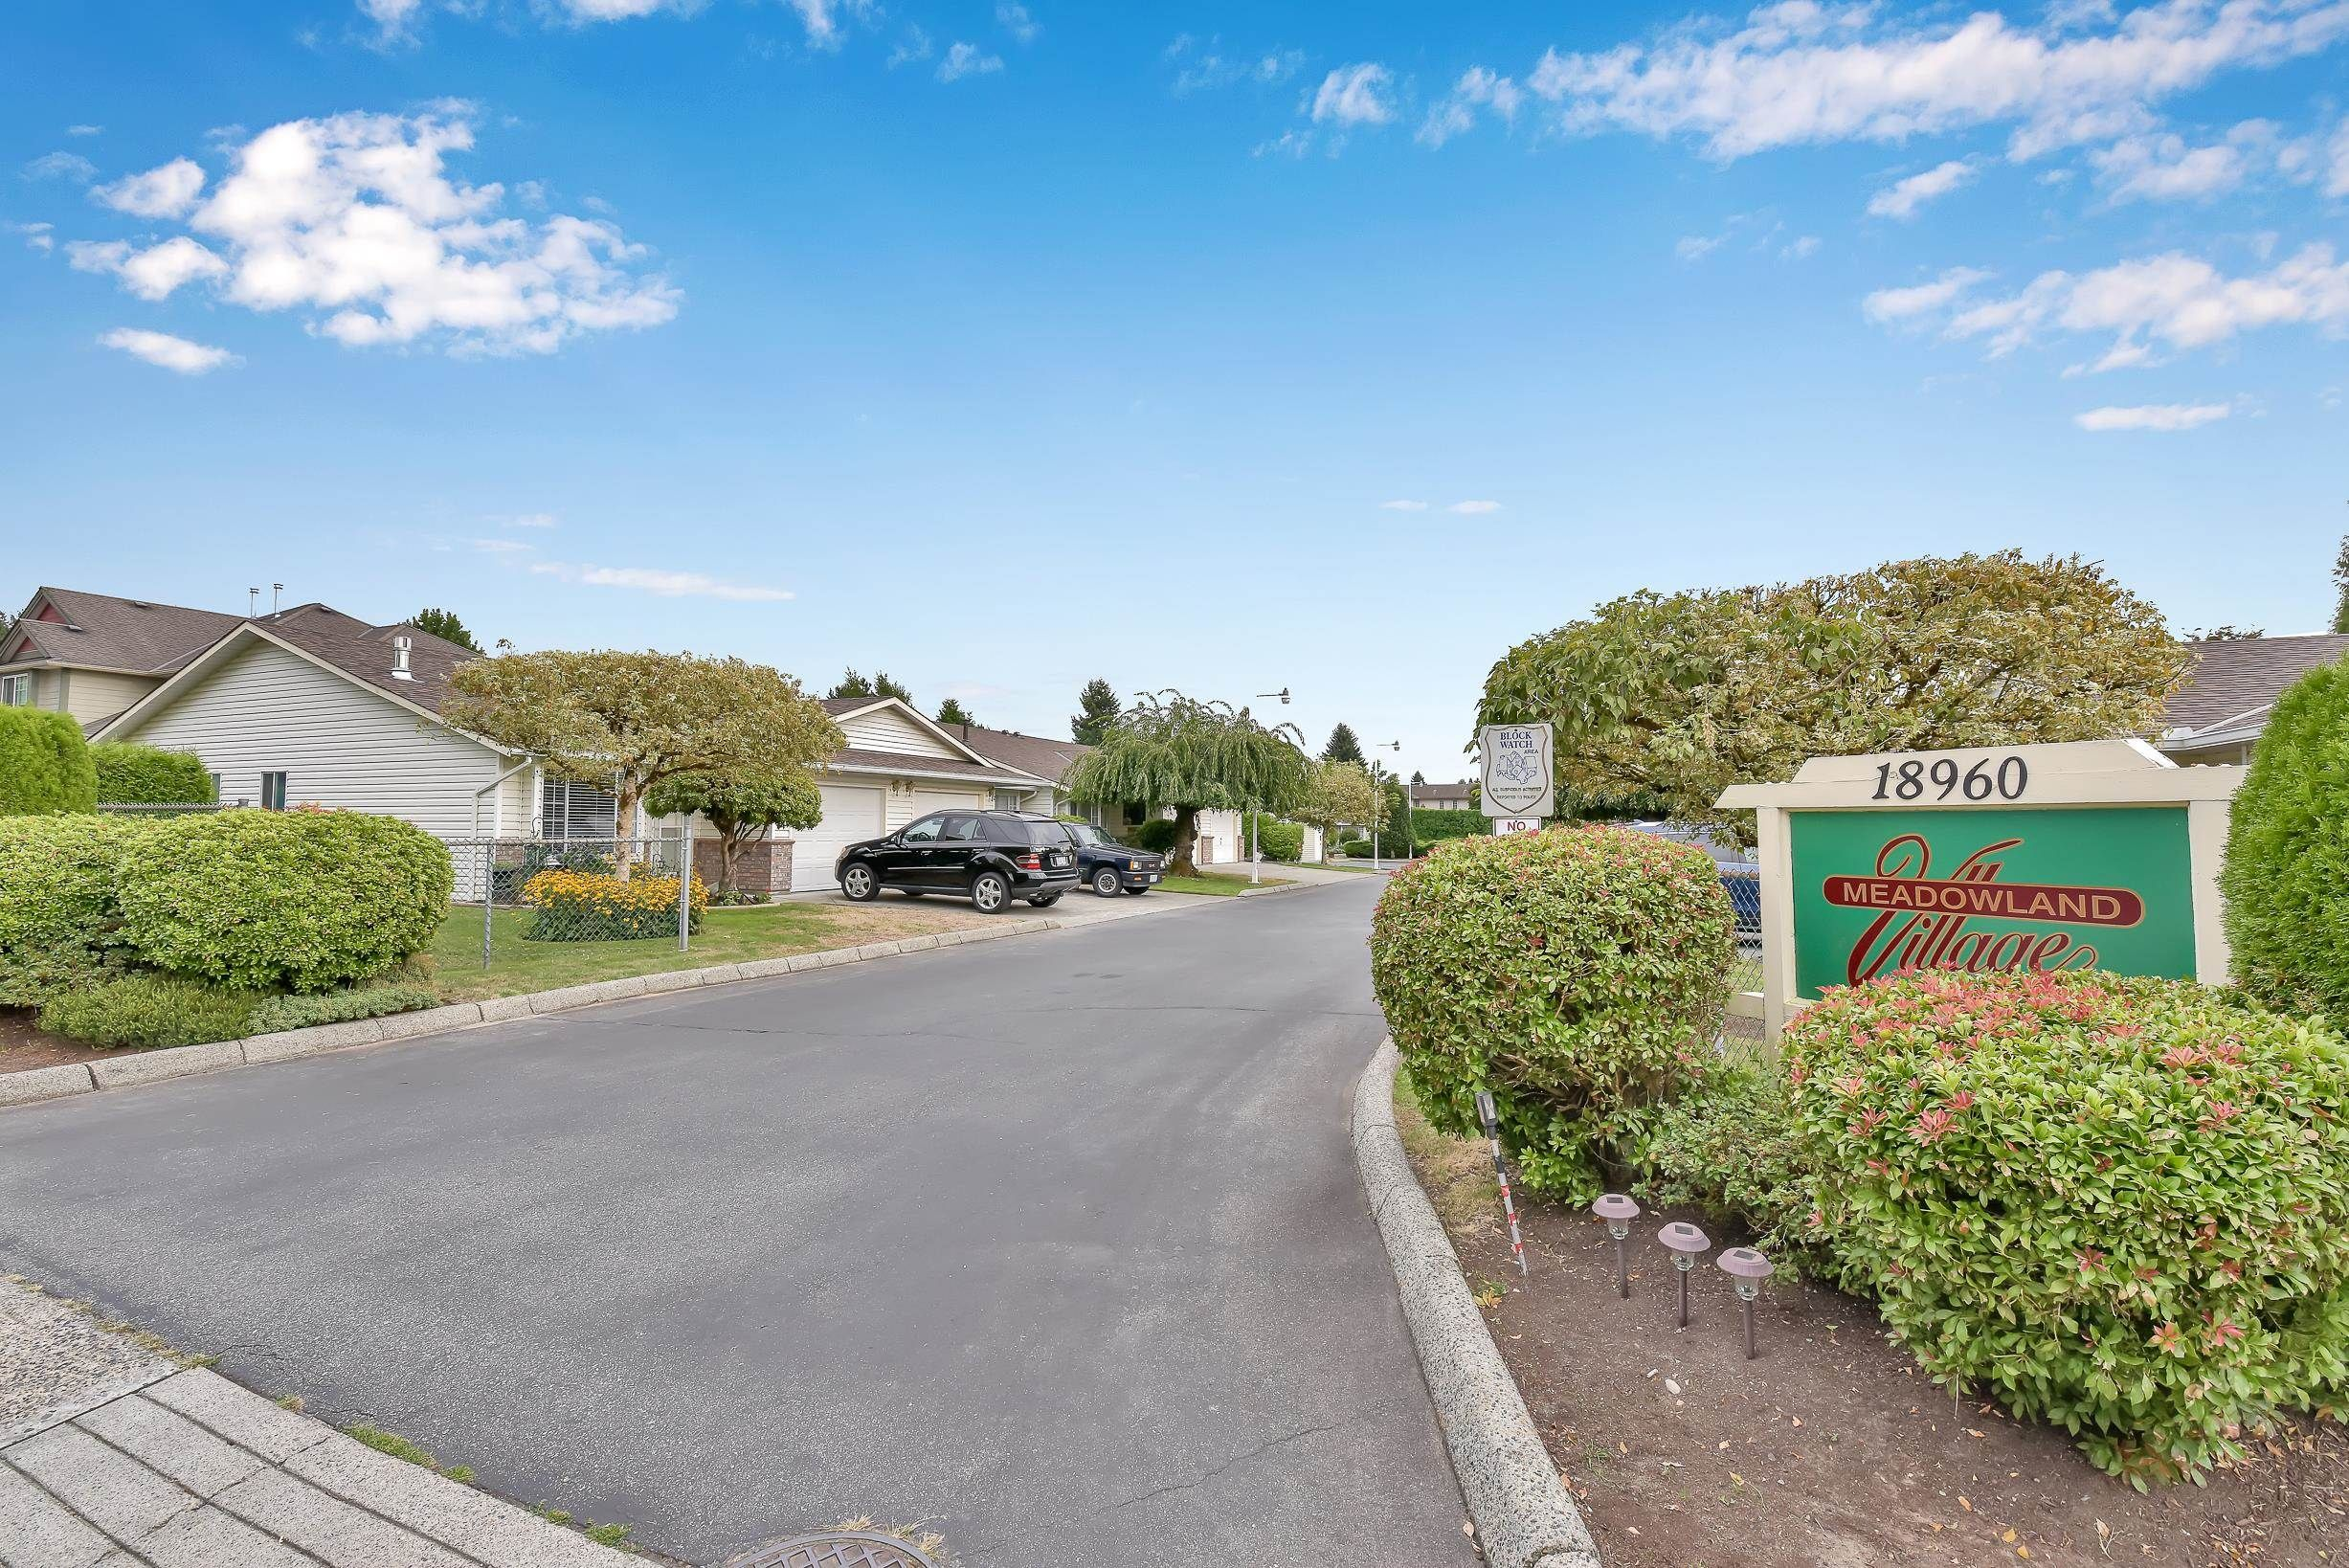 """Main Photo: 8 18960 ADVENT Road in Pitt Meadows: Central Meadows Townhouse for sale in """"MEADOWLAND VILLAGE"""" : MLS®# R2614039"""